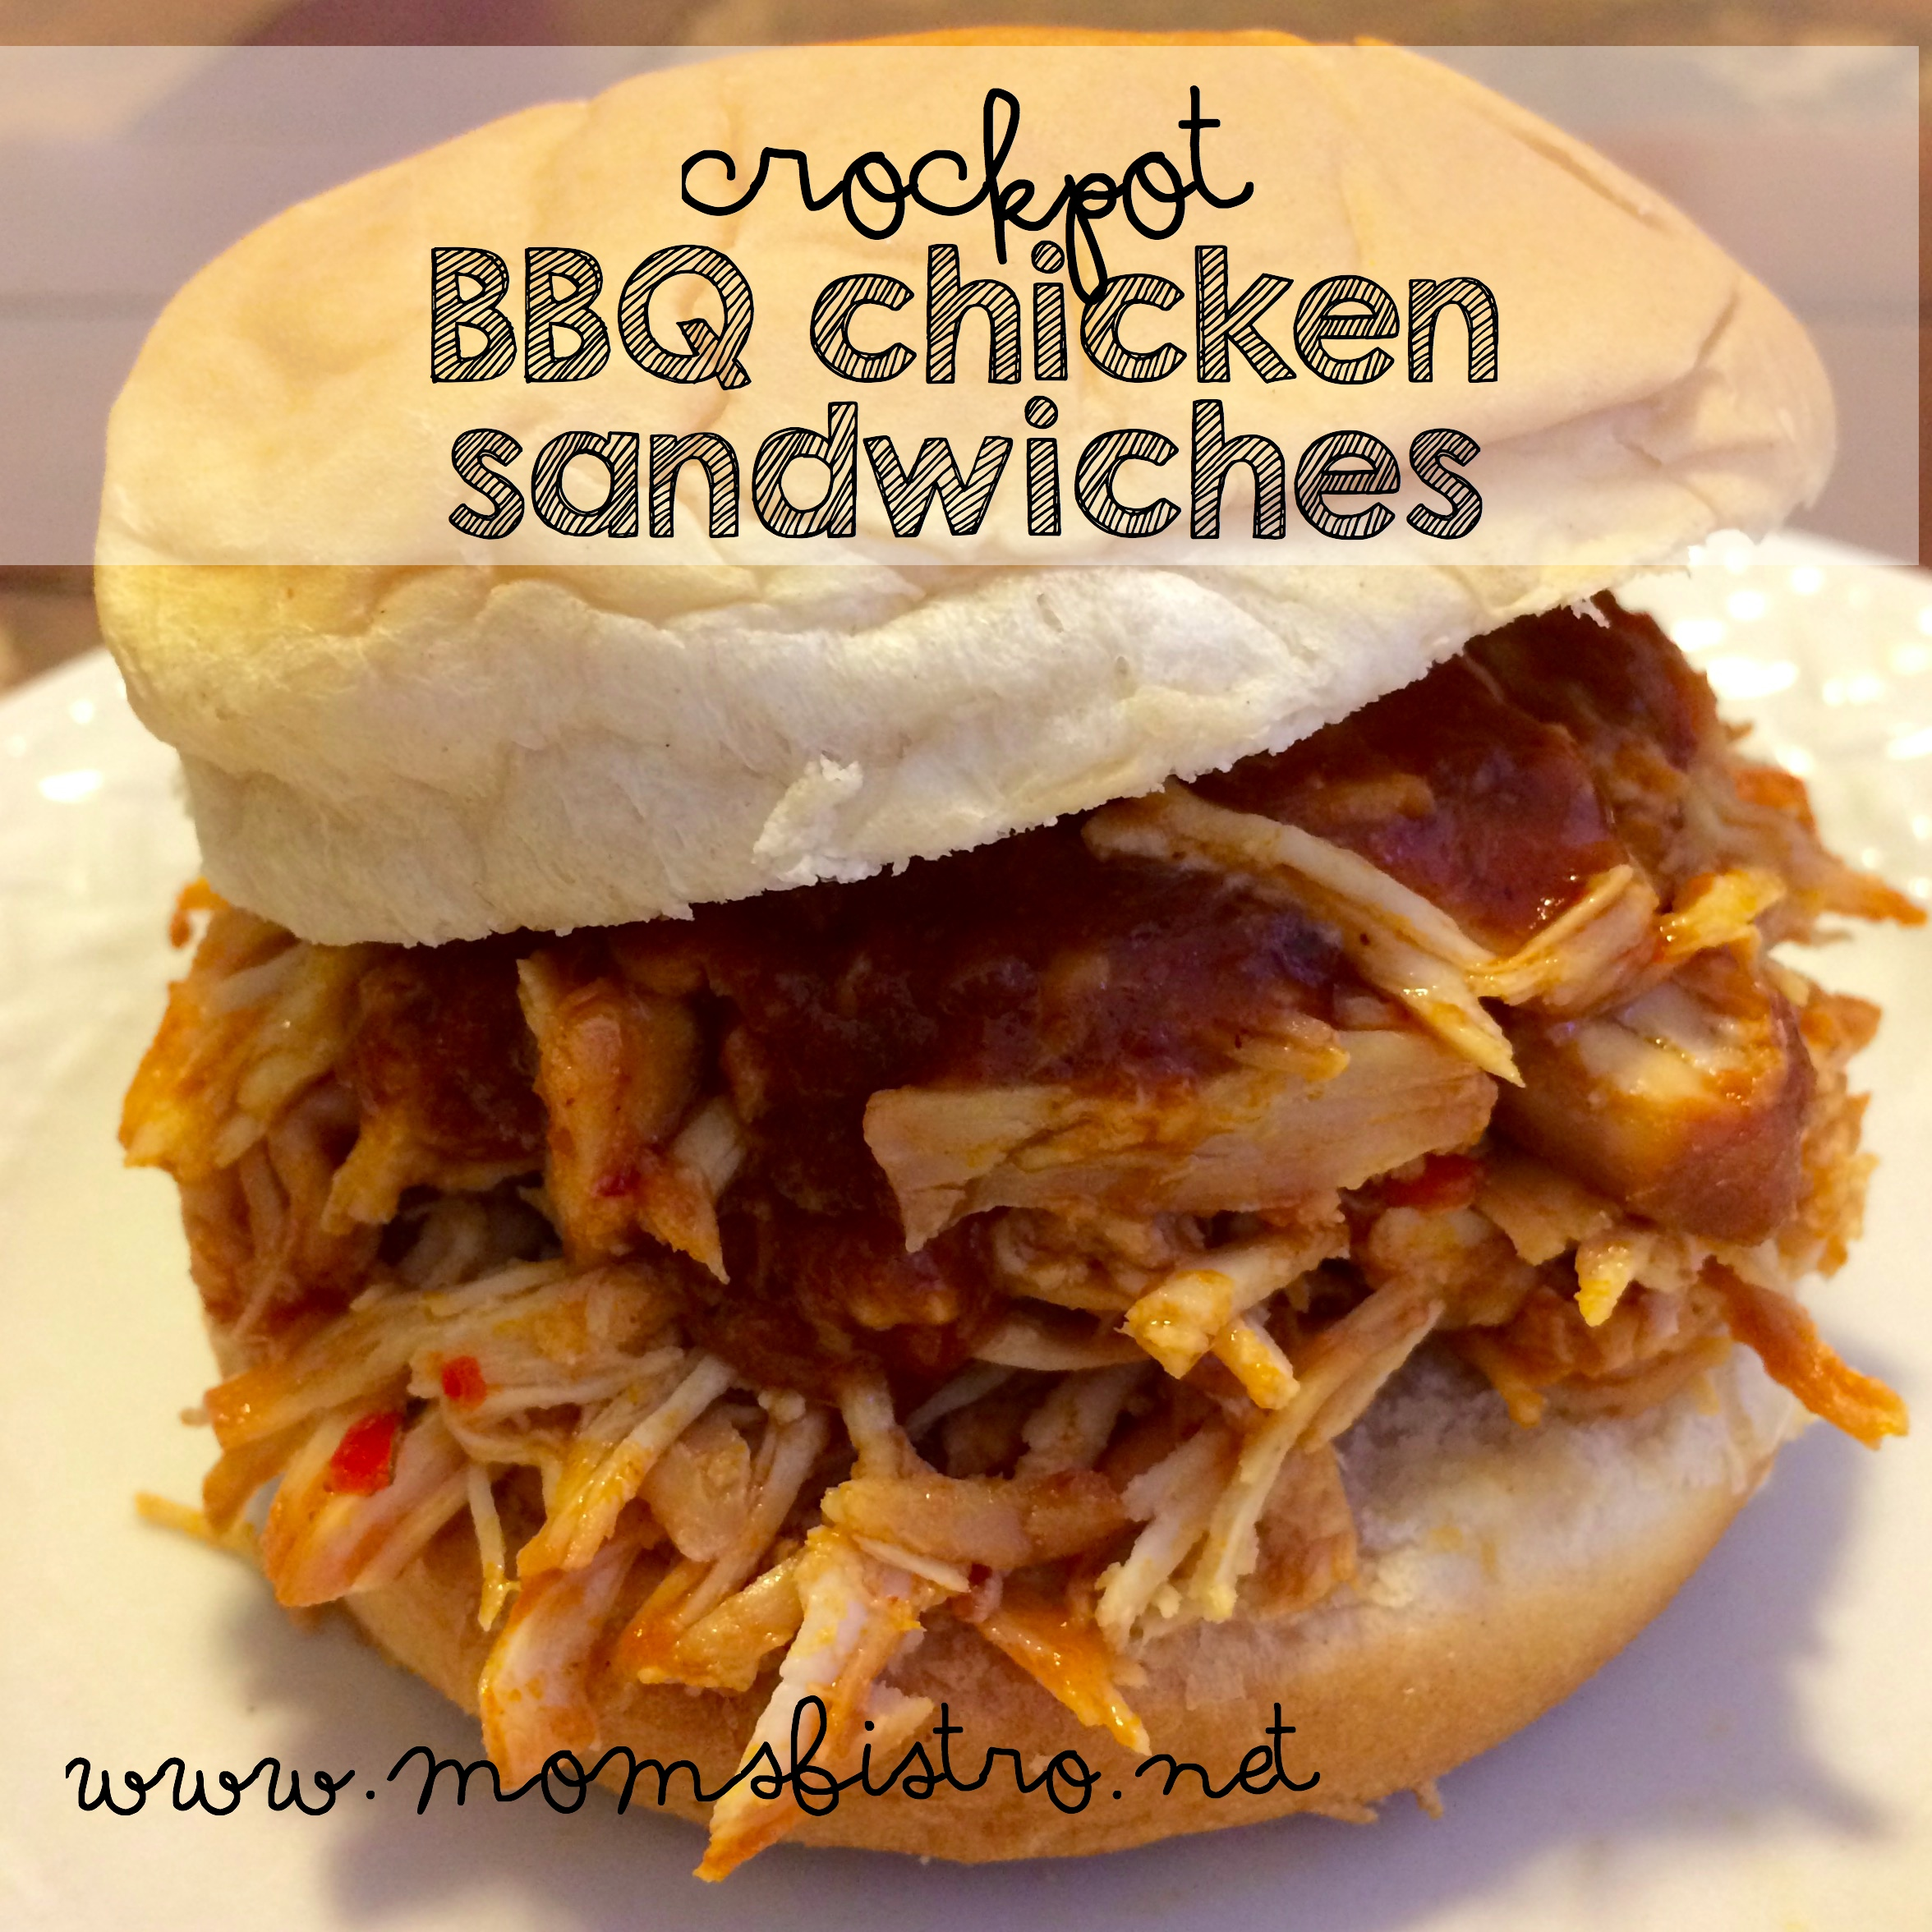 easy kid friendly bbq chicken sandwiches crockpot recipe homemade bbq sauce hidden vegetables moms bistro